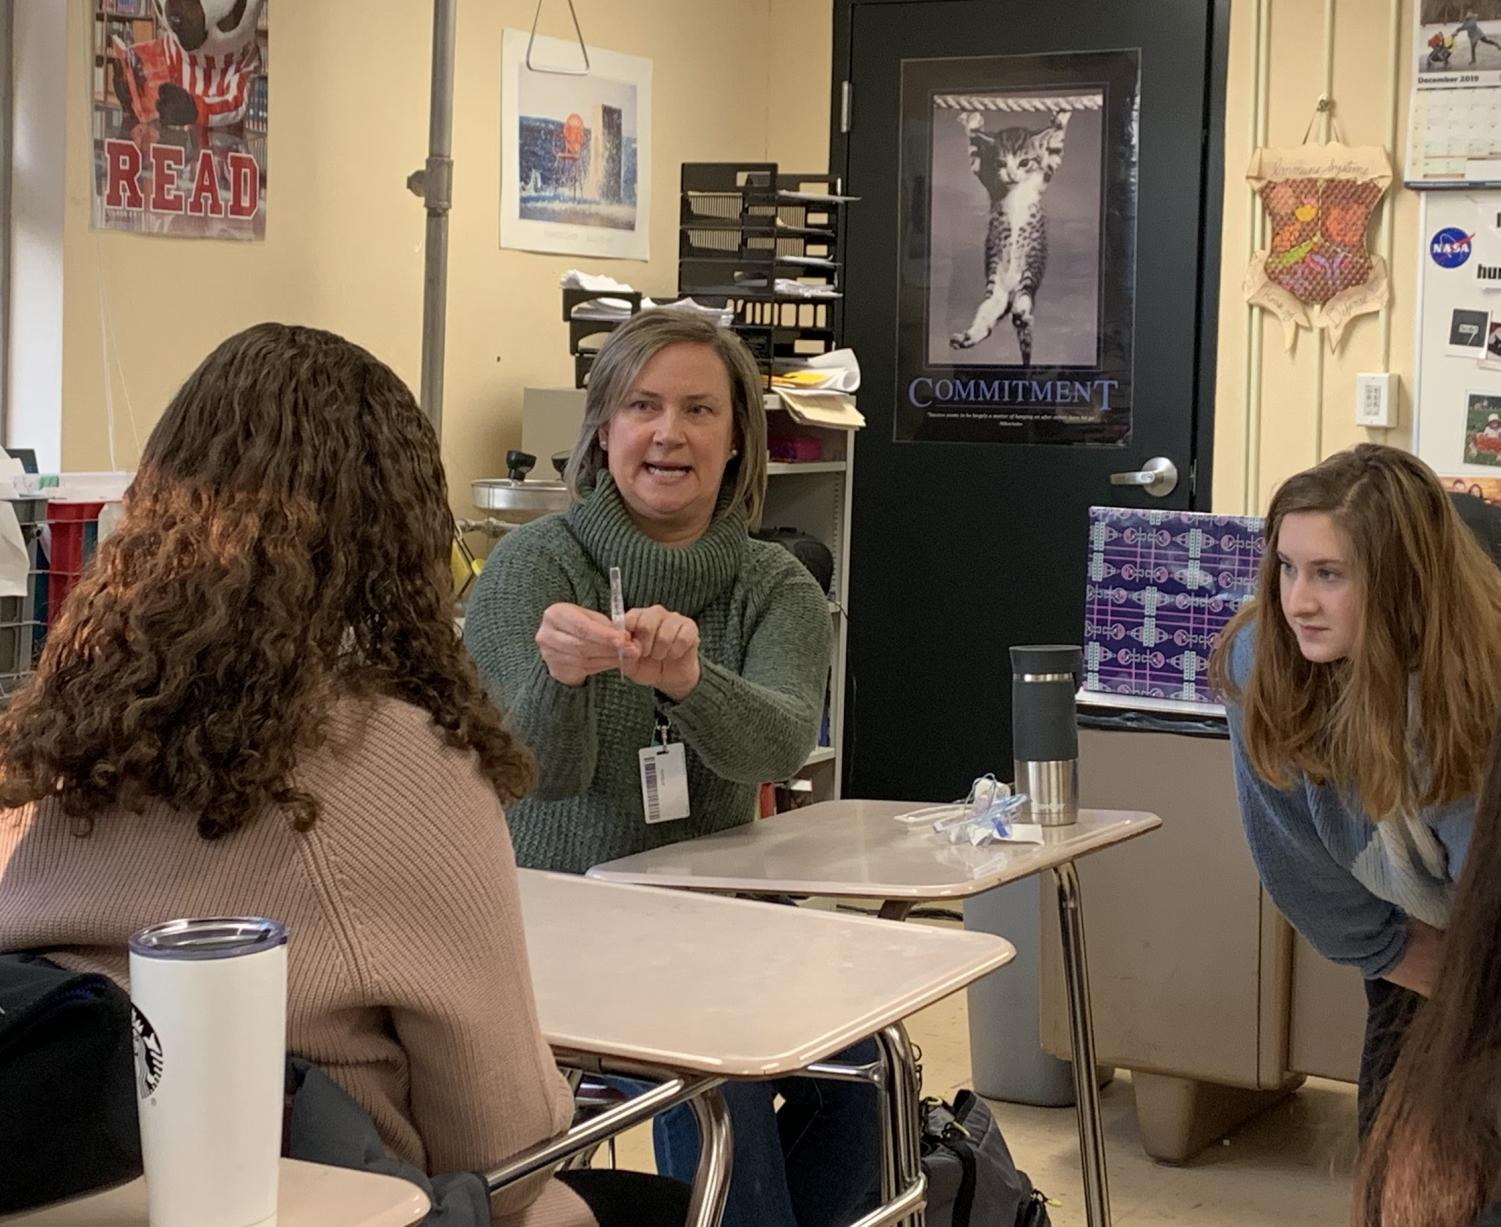 Home care nurse Heather Mcleod describes how to put an IV in to senior Emma Tight. Med club invited Mcleod to speak to students about her profession at the club meeting Dec. 17.